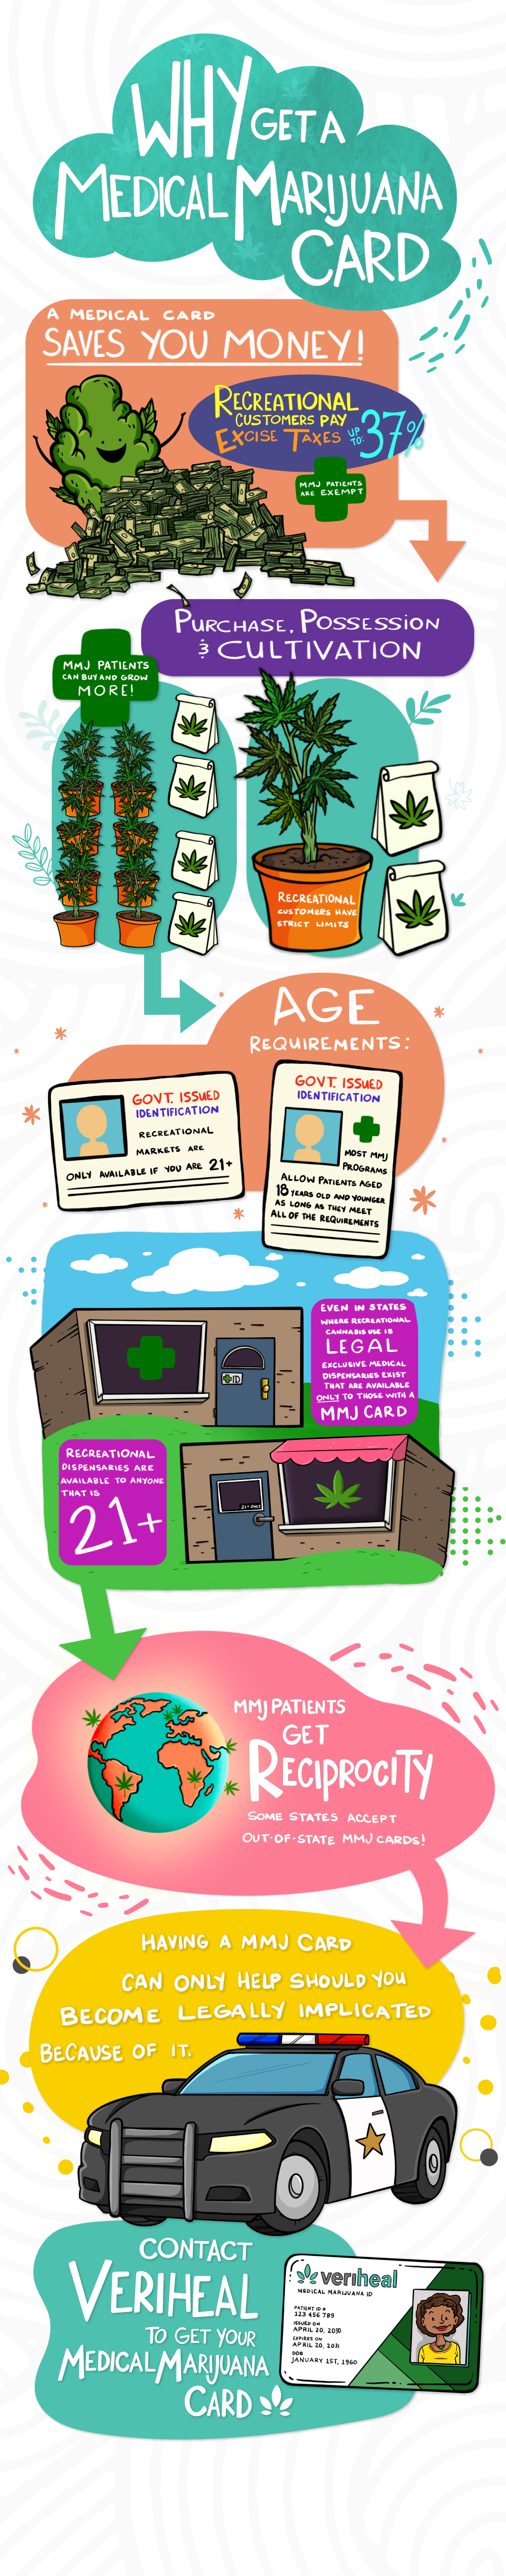 Veriheal Infographic - Why get a medical marijuana card